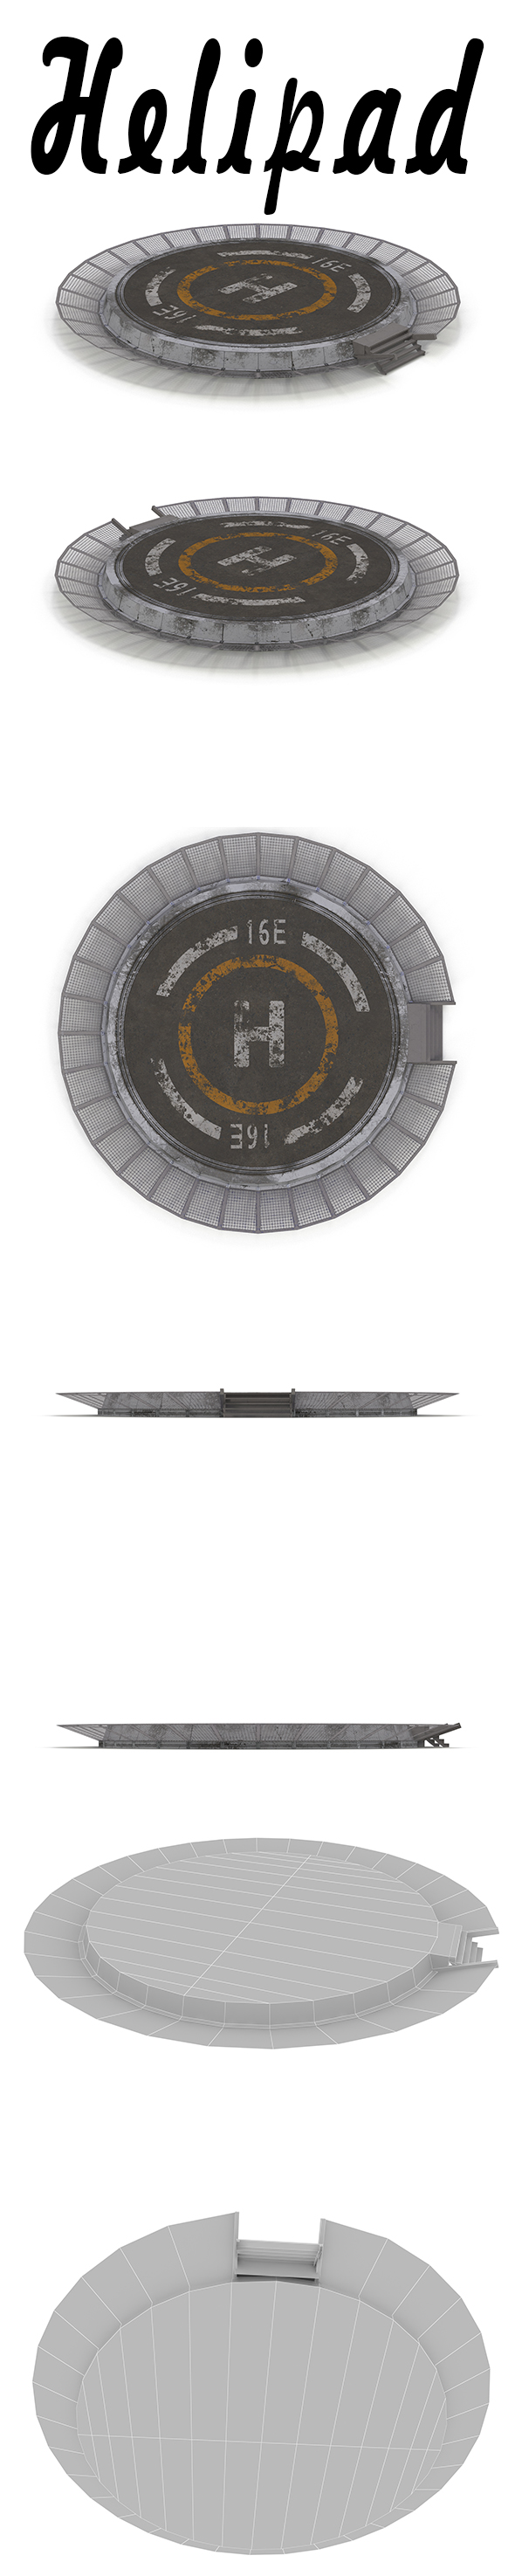 Helipad - 3DOcean Item for Sale